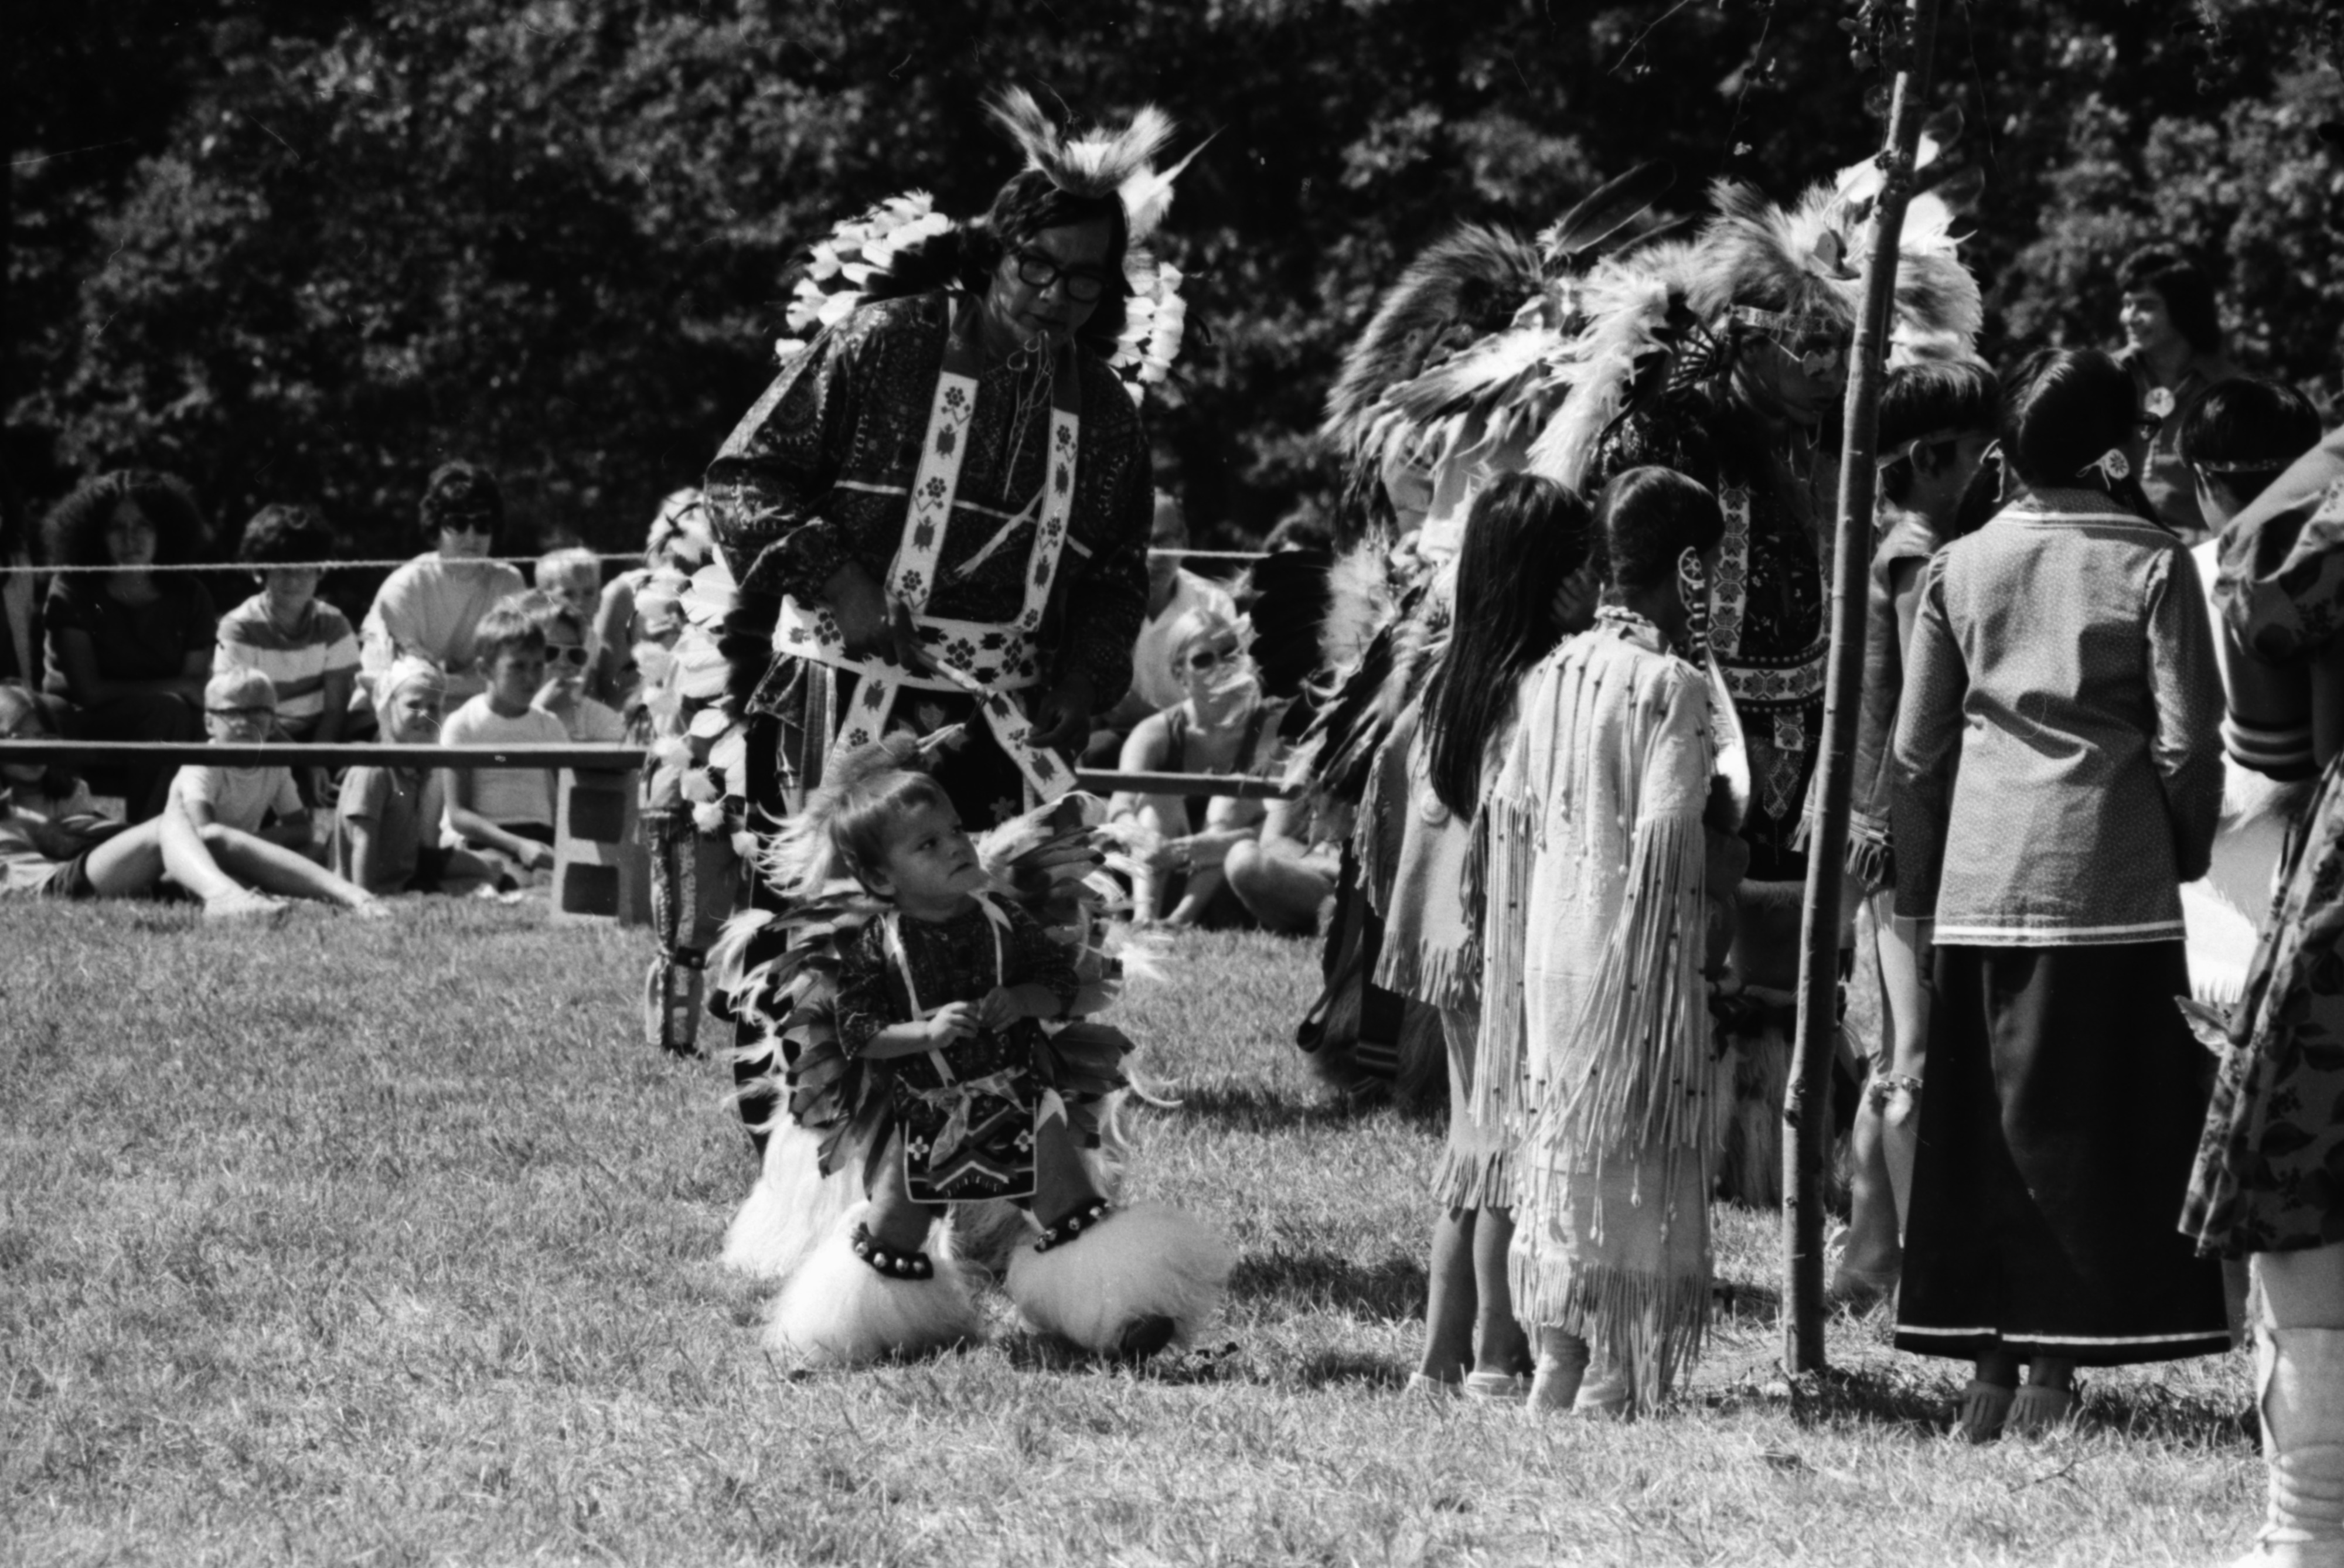 Stanley Morseau watches his son, Stanley Jr. at the annual Powwow sponsored by American Indians Unlimited (AIU), Knights of Columbus Park, August 1972 image